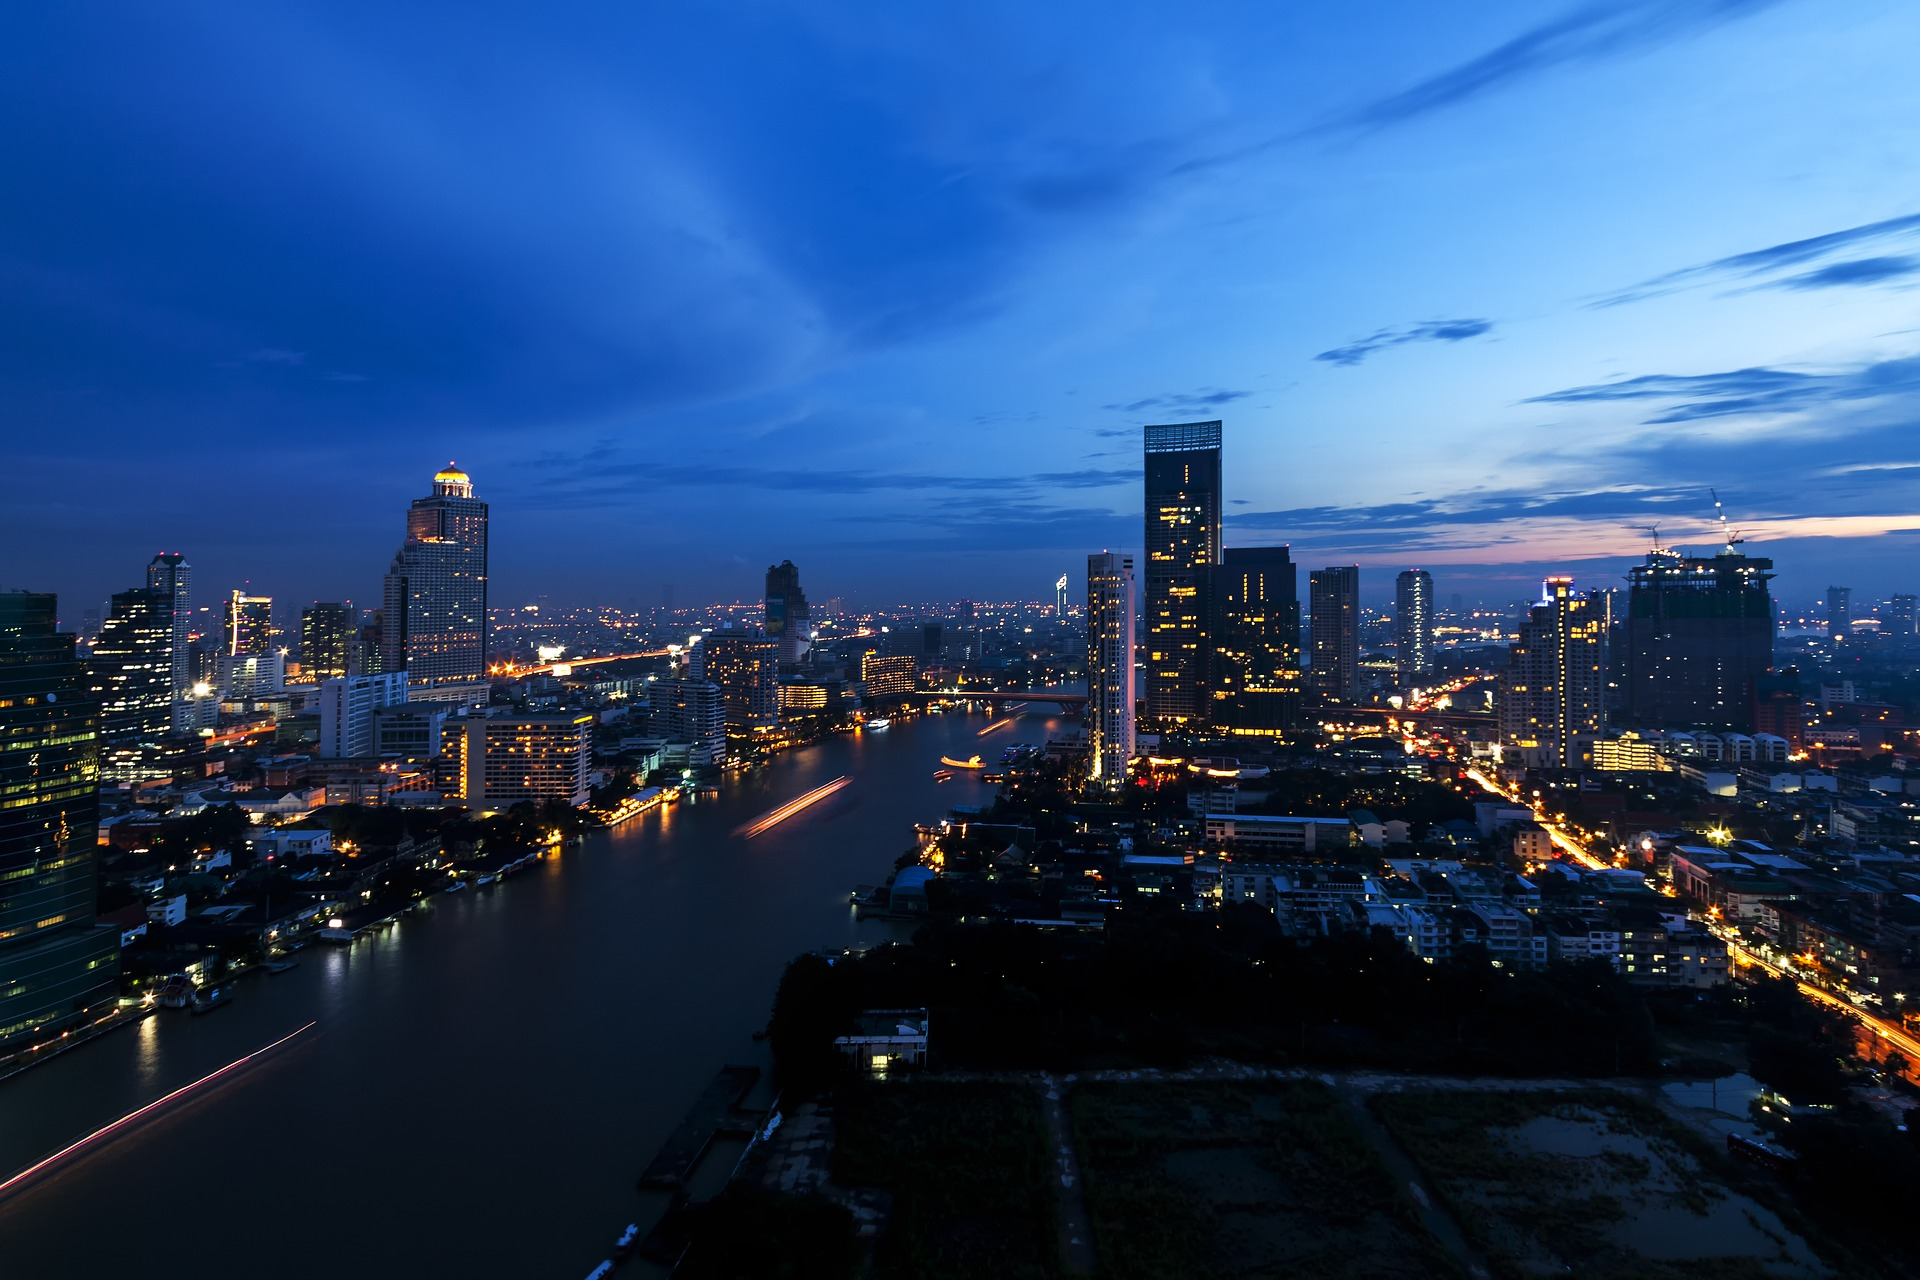 bangkok-river-at-night